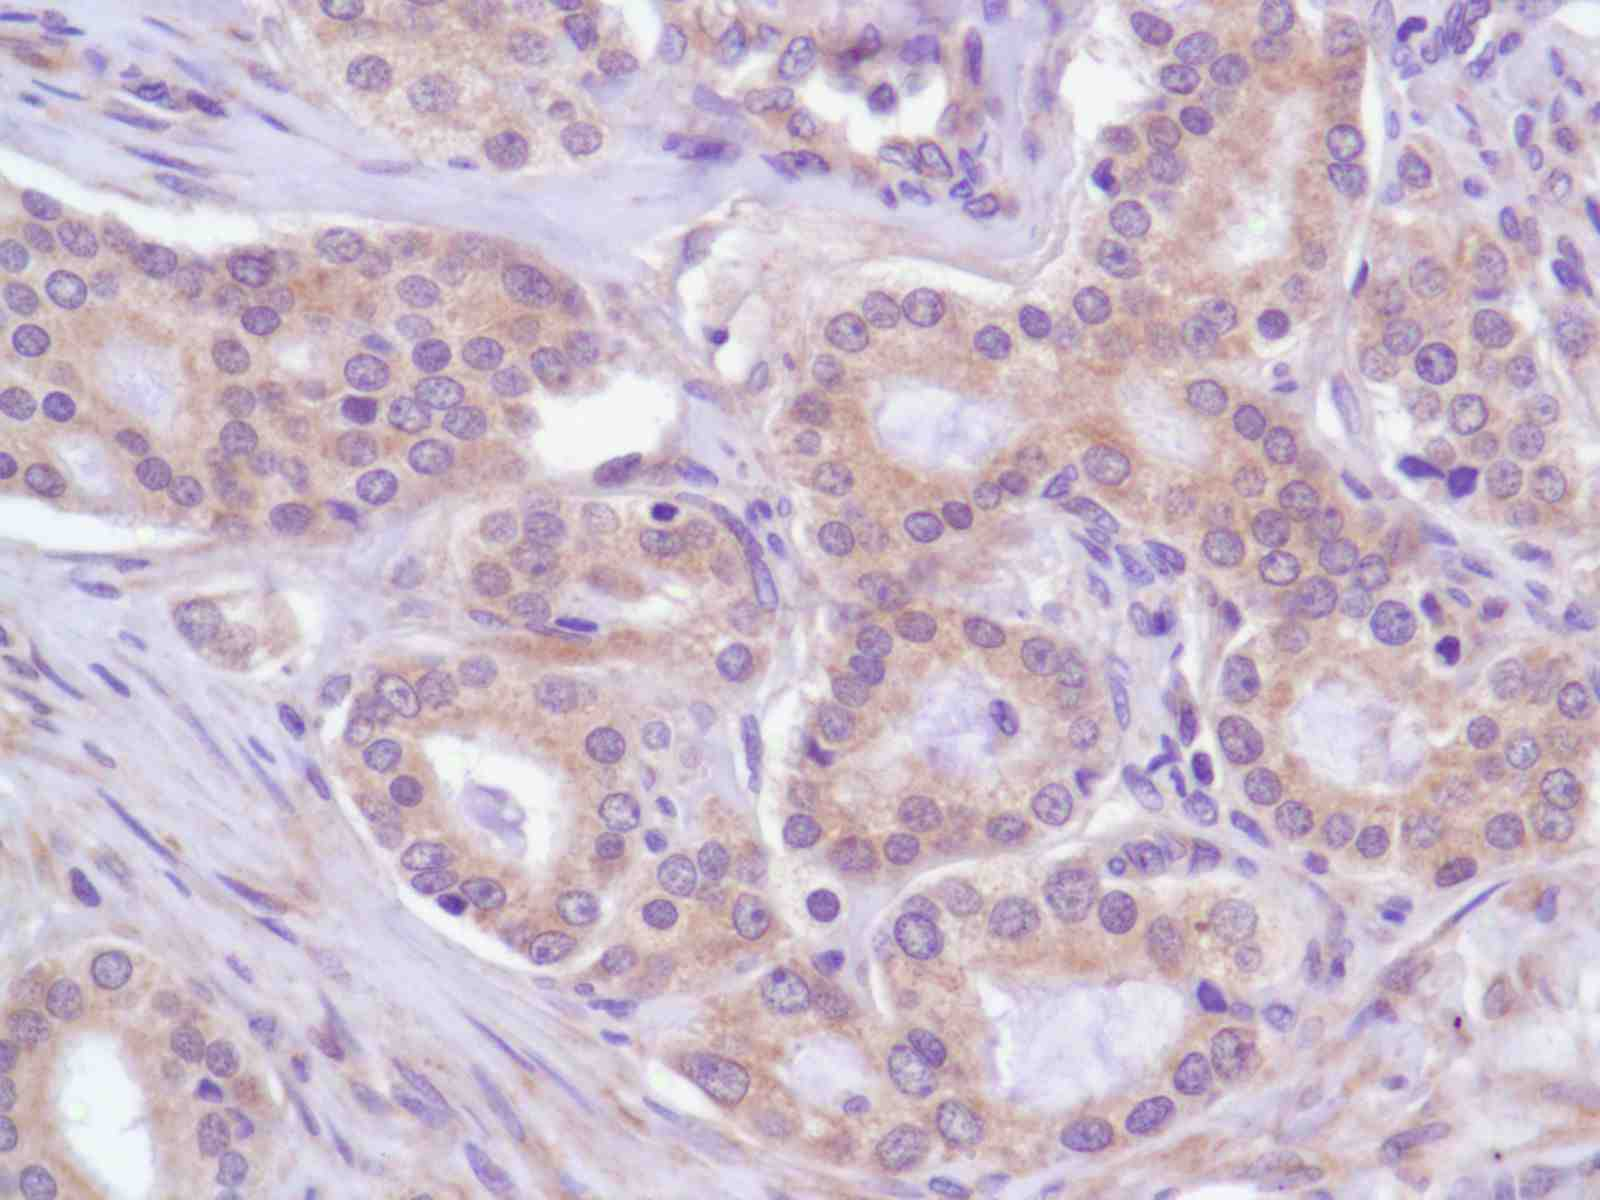 Human Prostate Adenocarcinoma stained with anti-PI3K p85 antibody